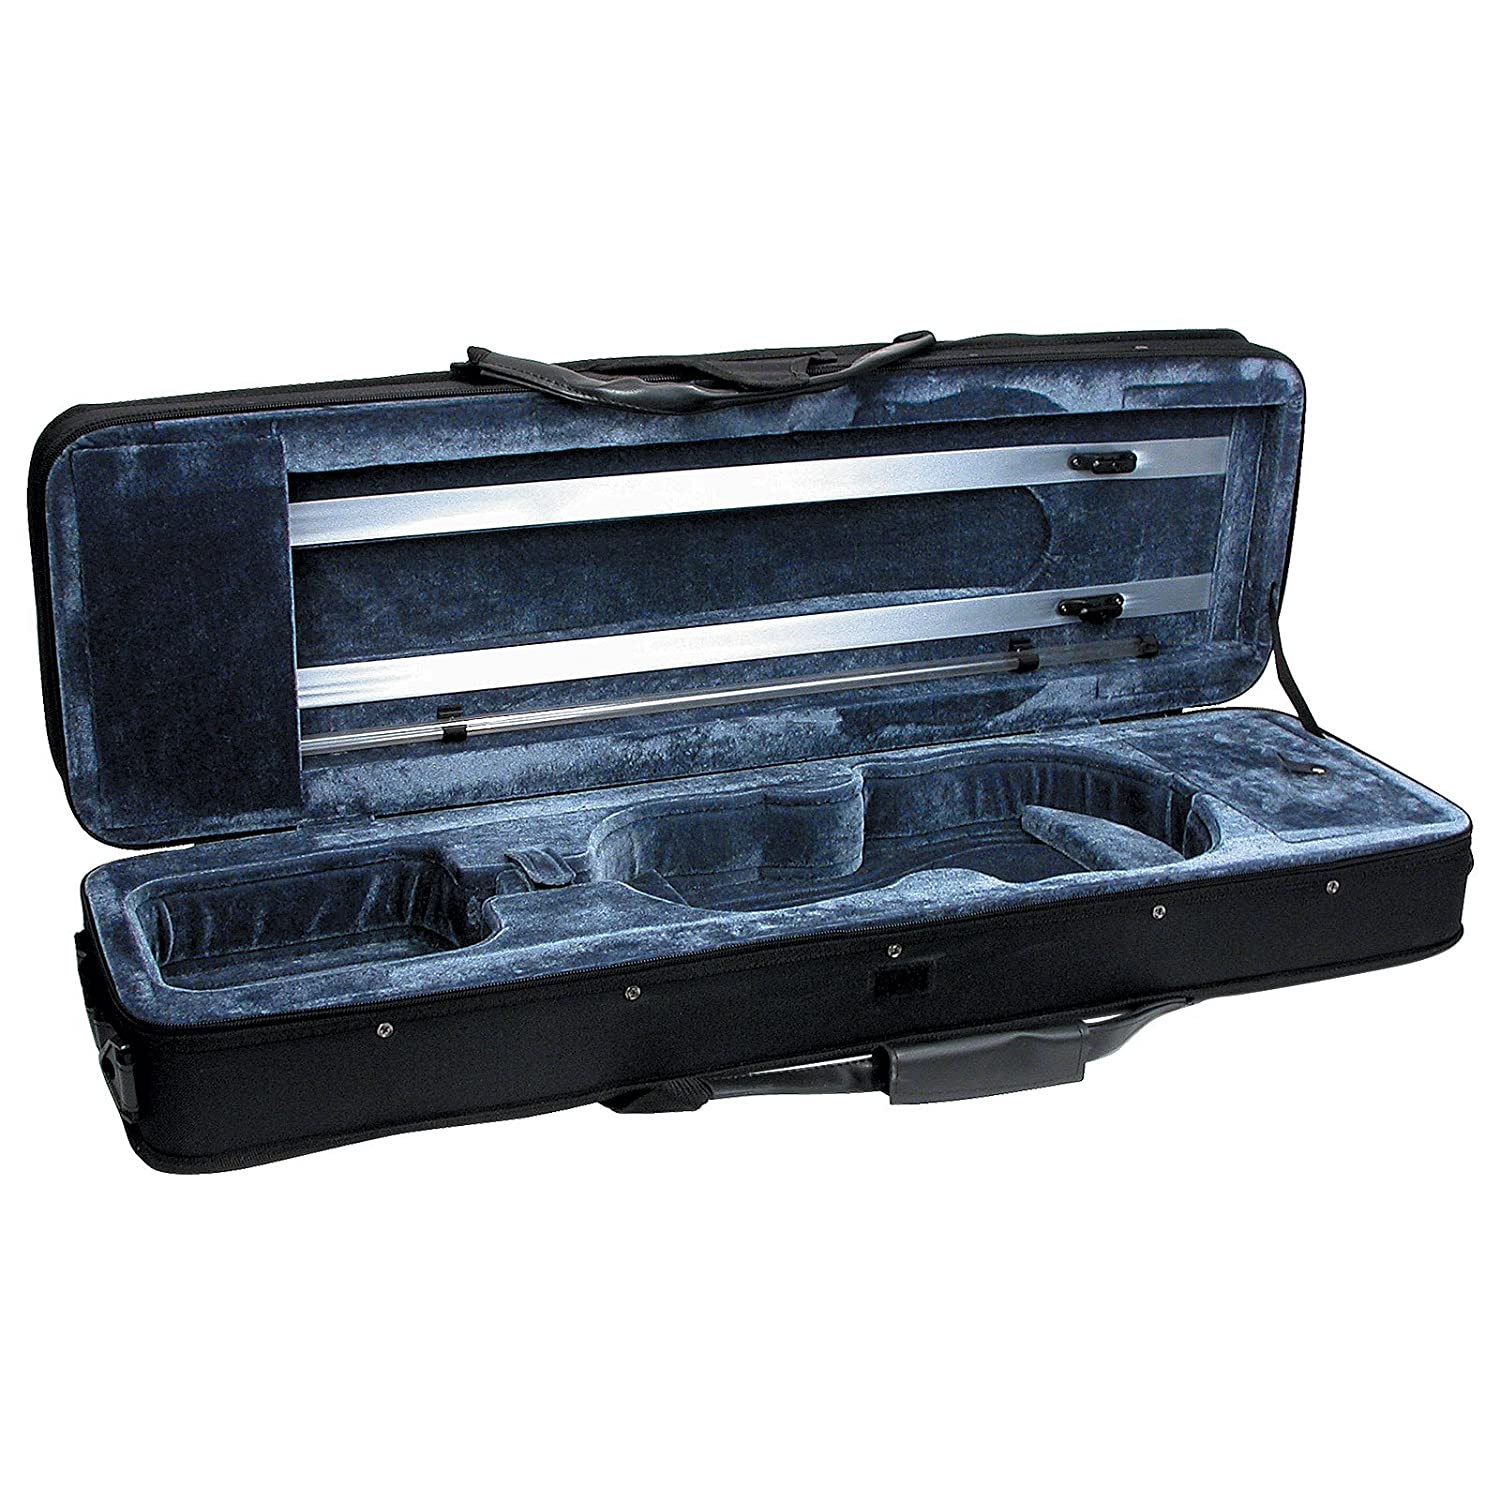 Top 17 Best Violin Cases (2020 Reviews & Buying Guide) 5